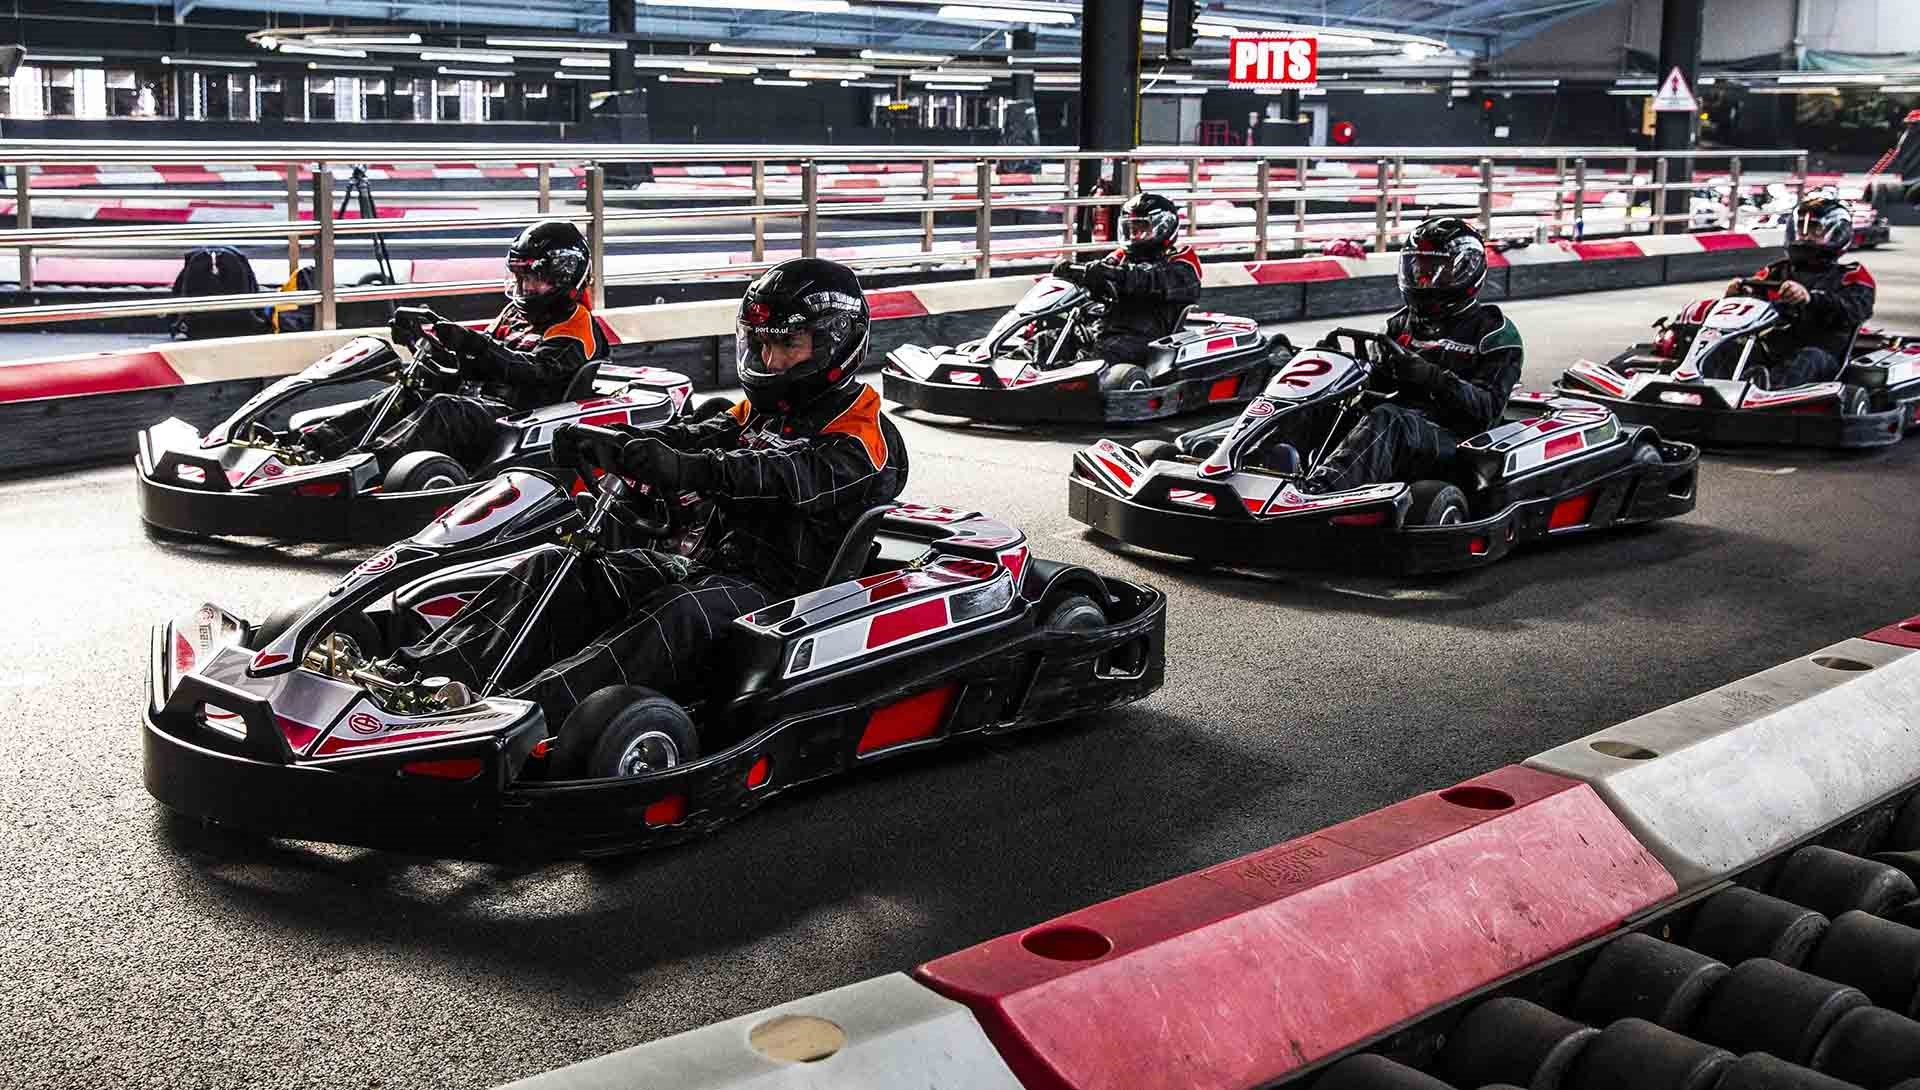 TeamSport_Gallery_Go_Karting_London_Docklands_1920x1090-min_2.jpg